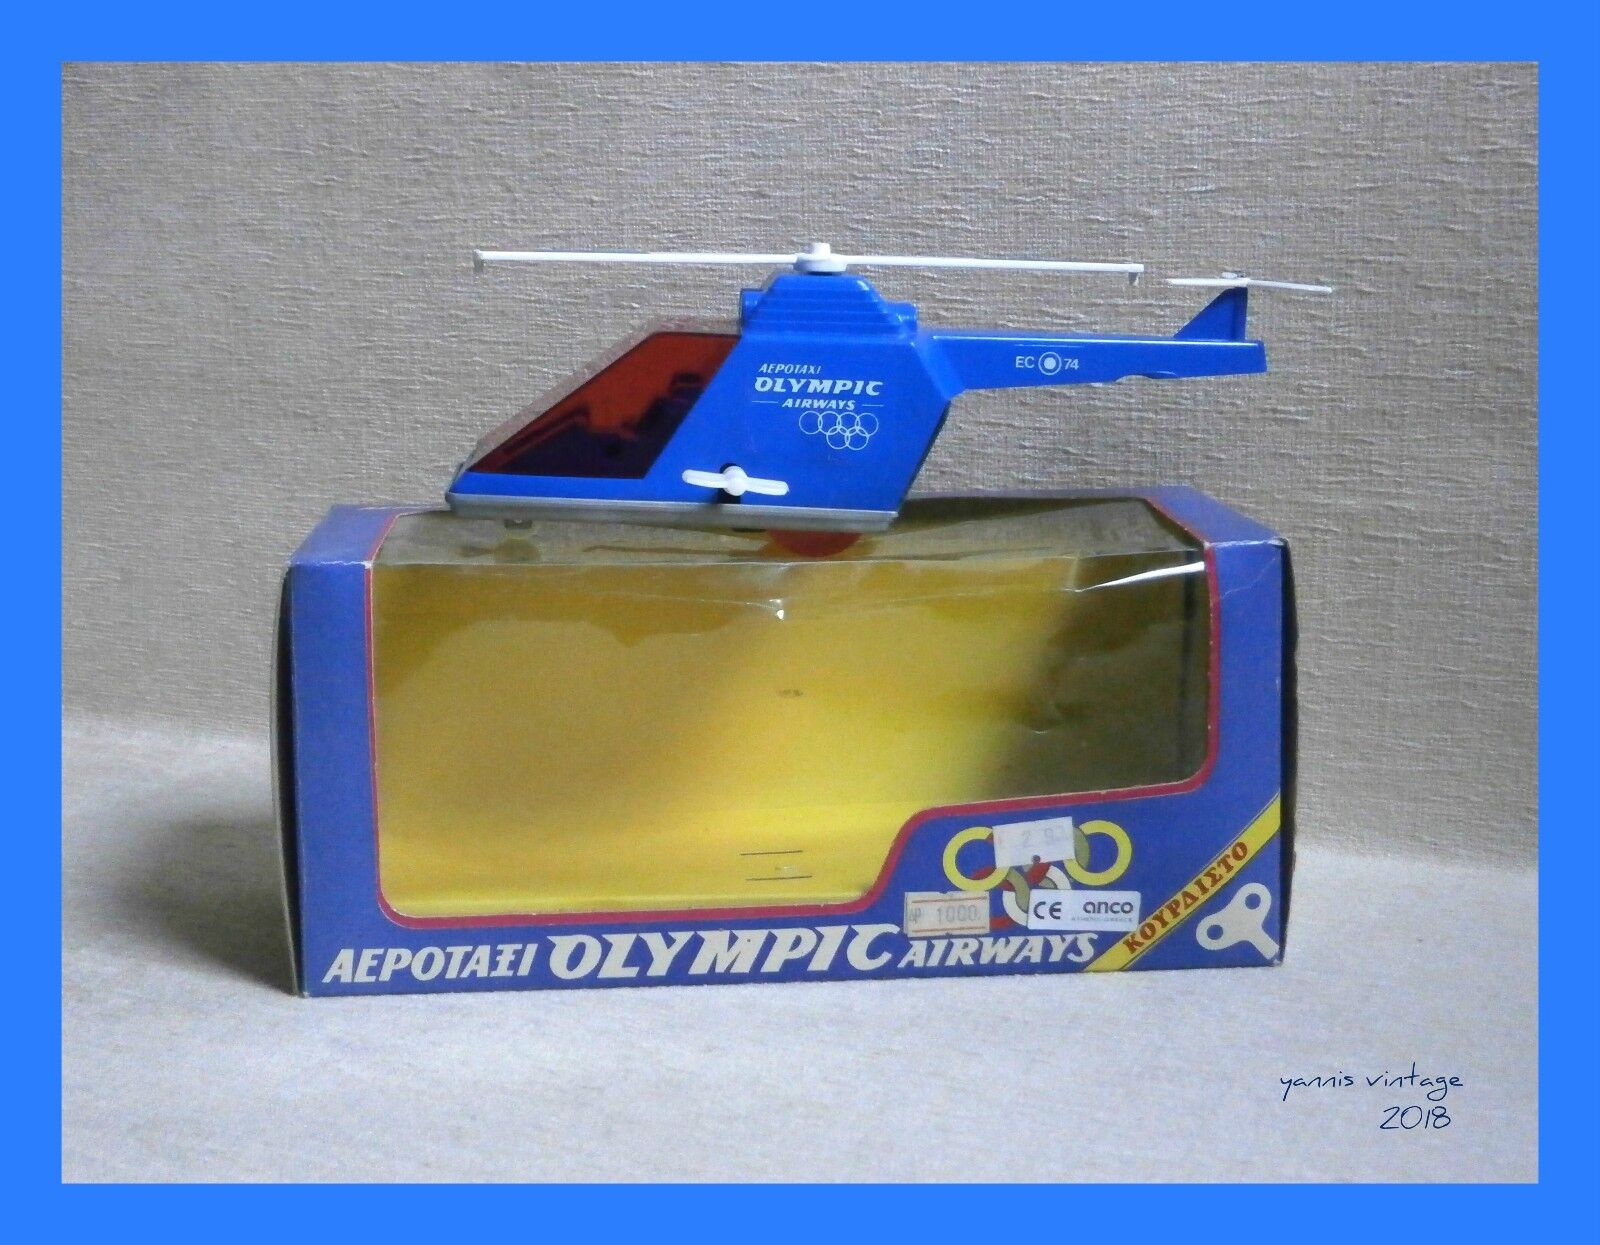 AERO-TAXI  HELICOPTER OLYMPIC AIRWAYS NIB Wind up Greece anco toys Plastic bluee